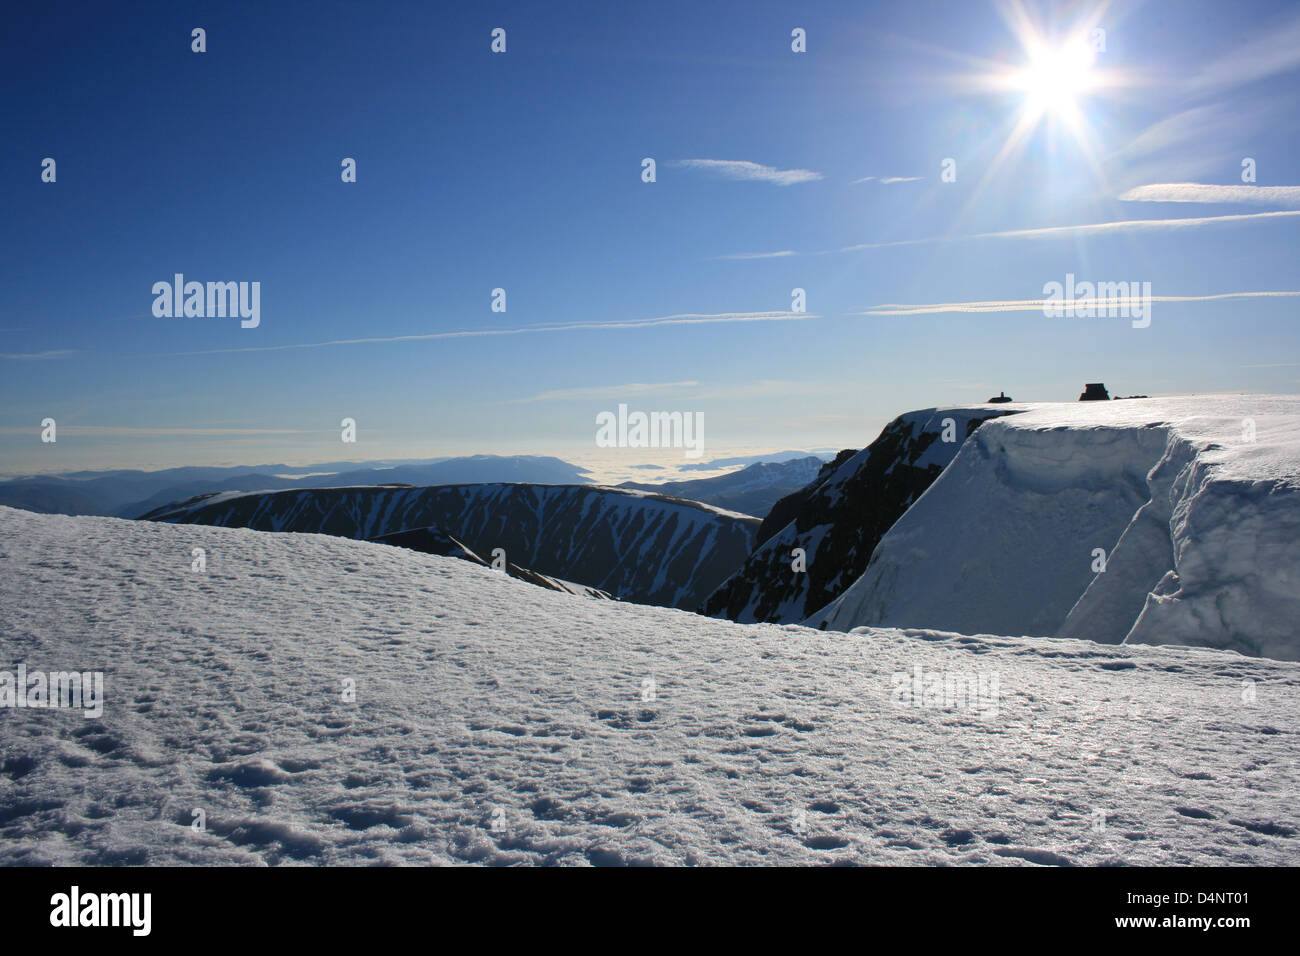 Taken on the summit of Ben Nevis during the National Three Peaks Challenge in May 2010 - Stock Image